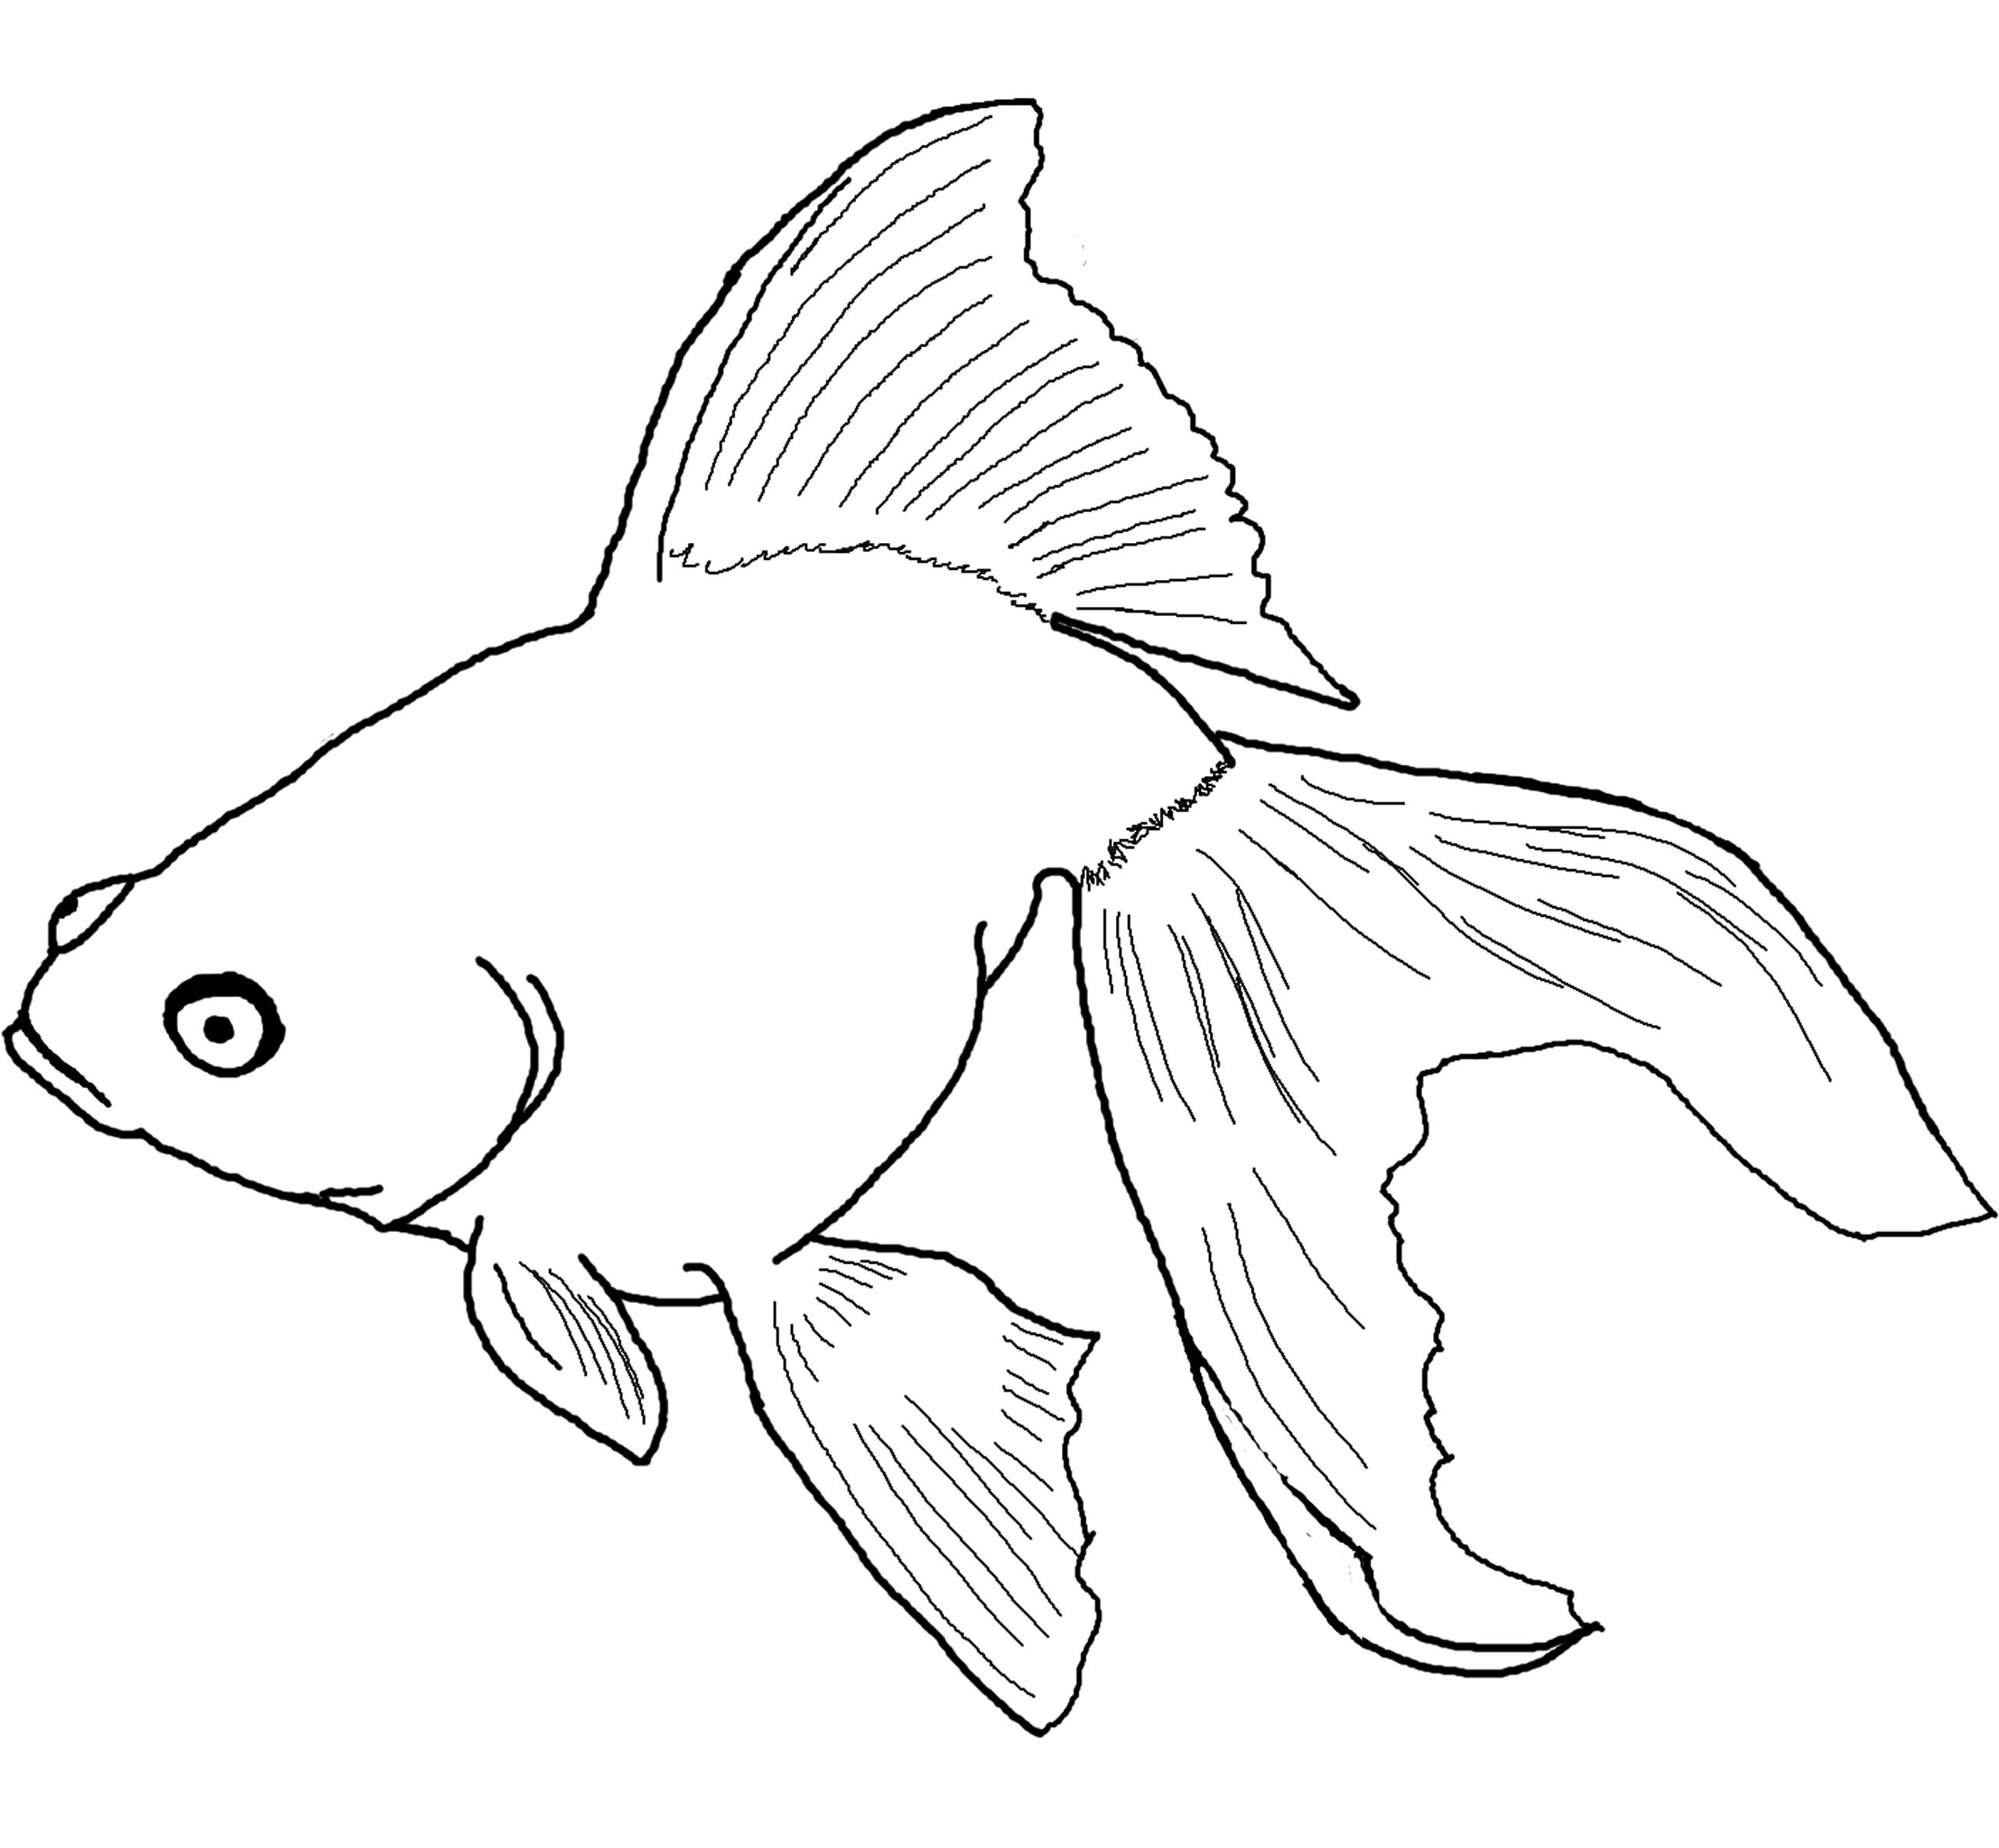 fish coloring pages for kids to print - Coloring Pages To Print